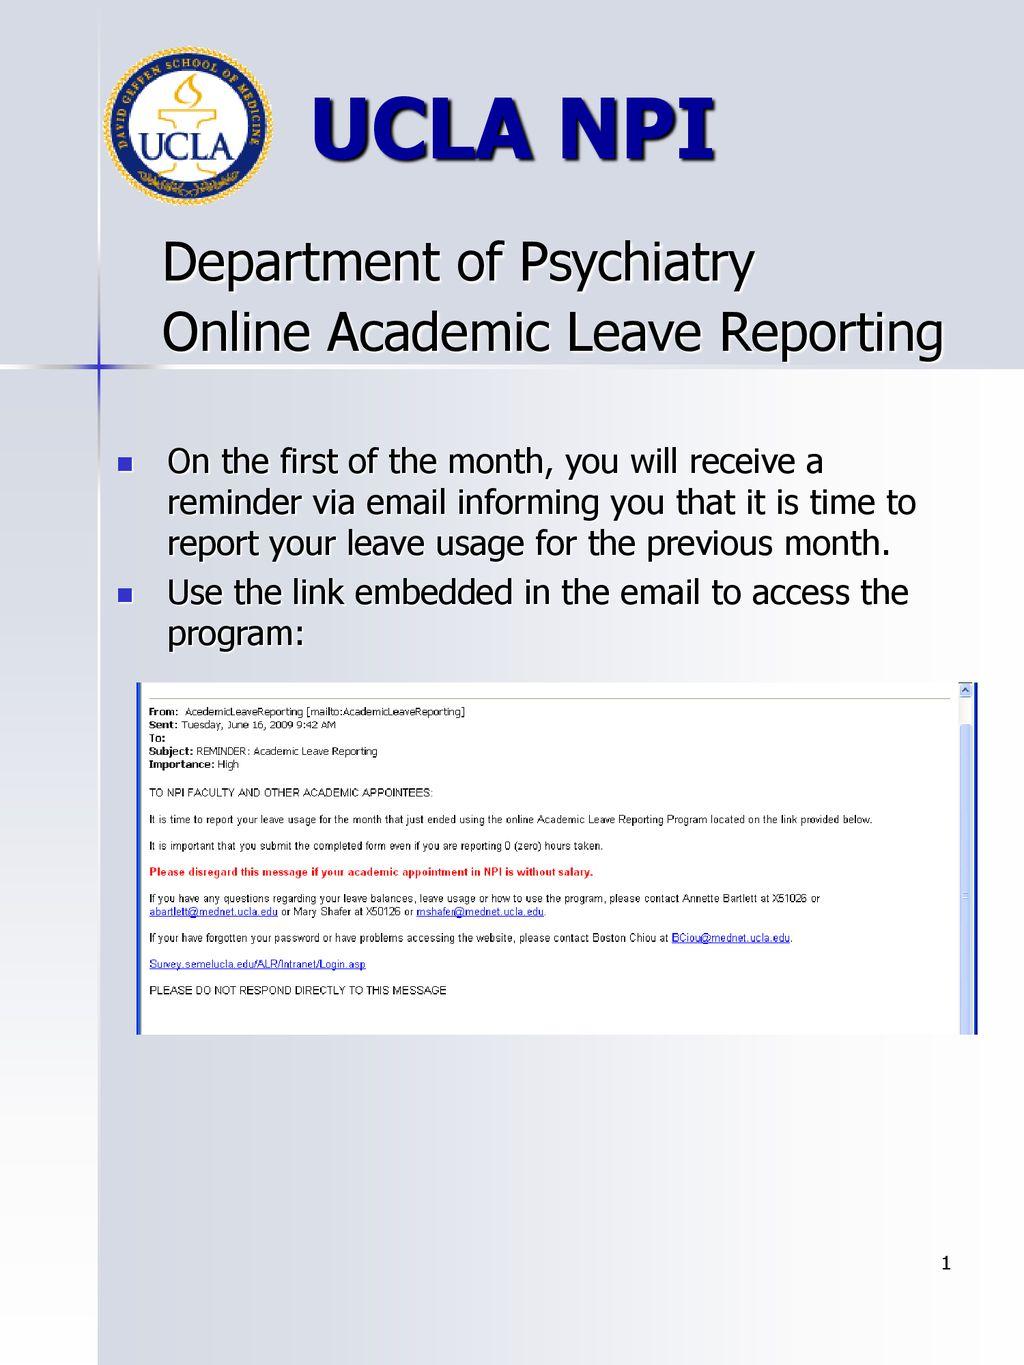 UCLA NPI Department of Psychiatry Online Academic Leave